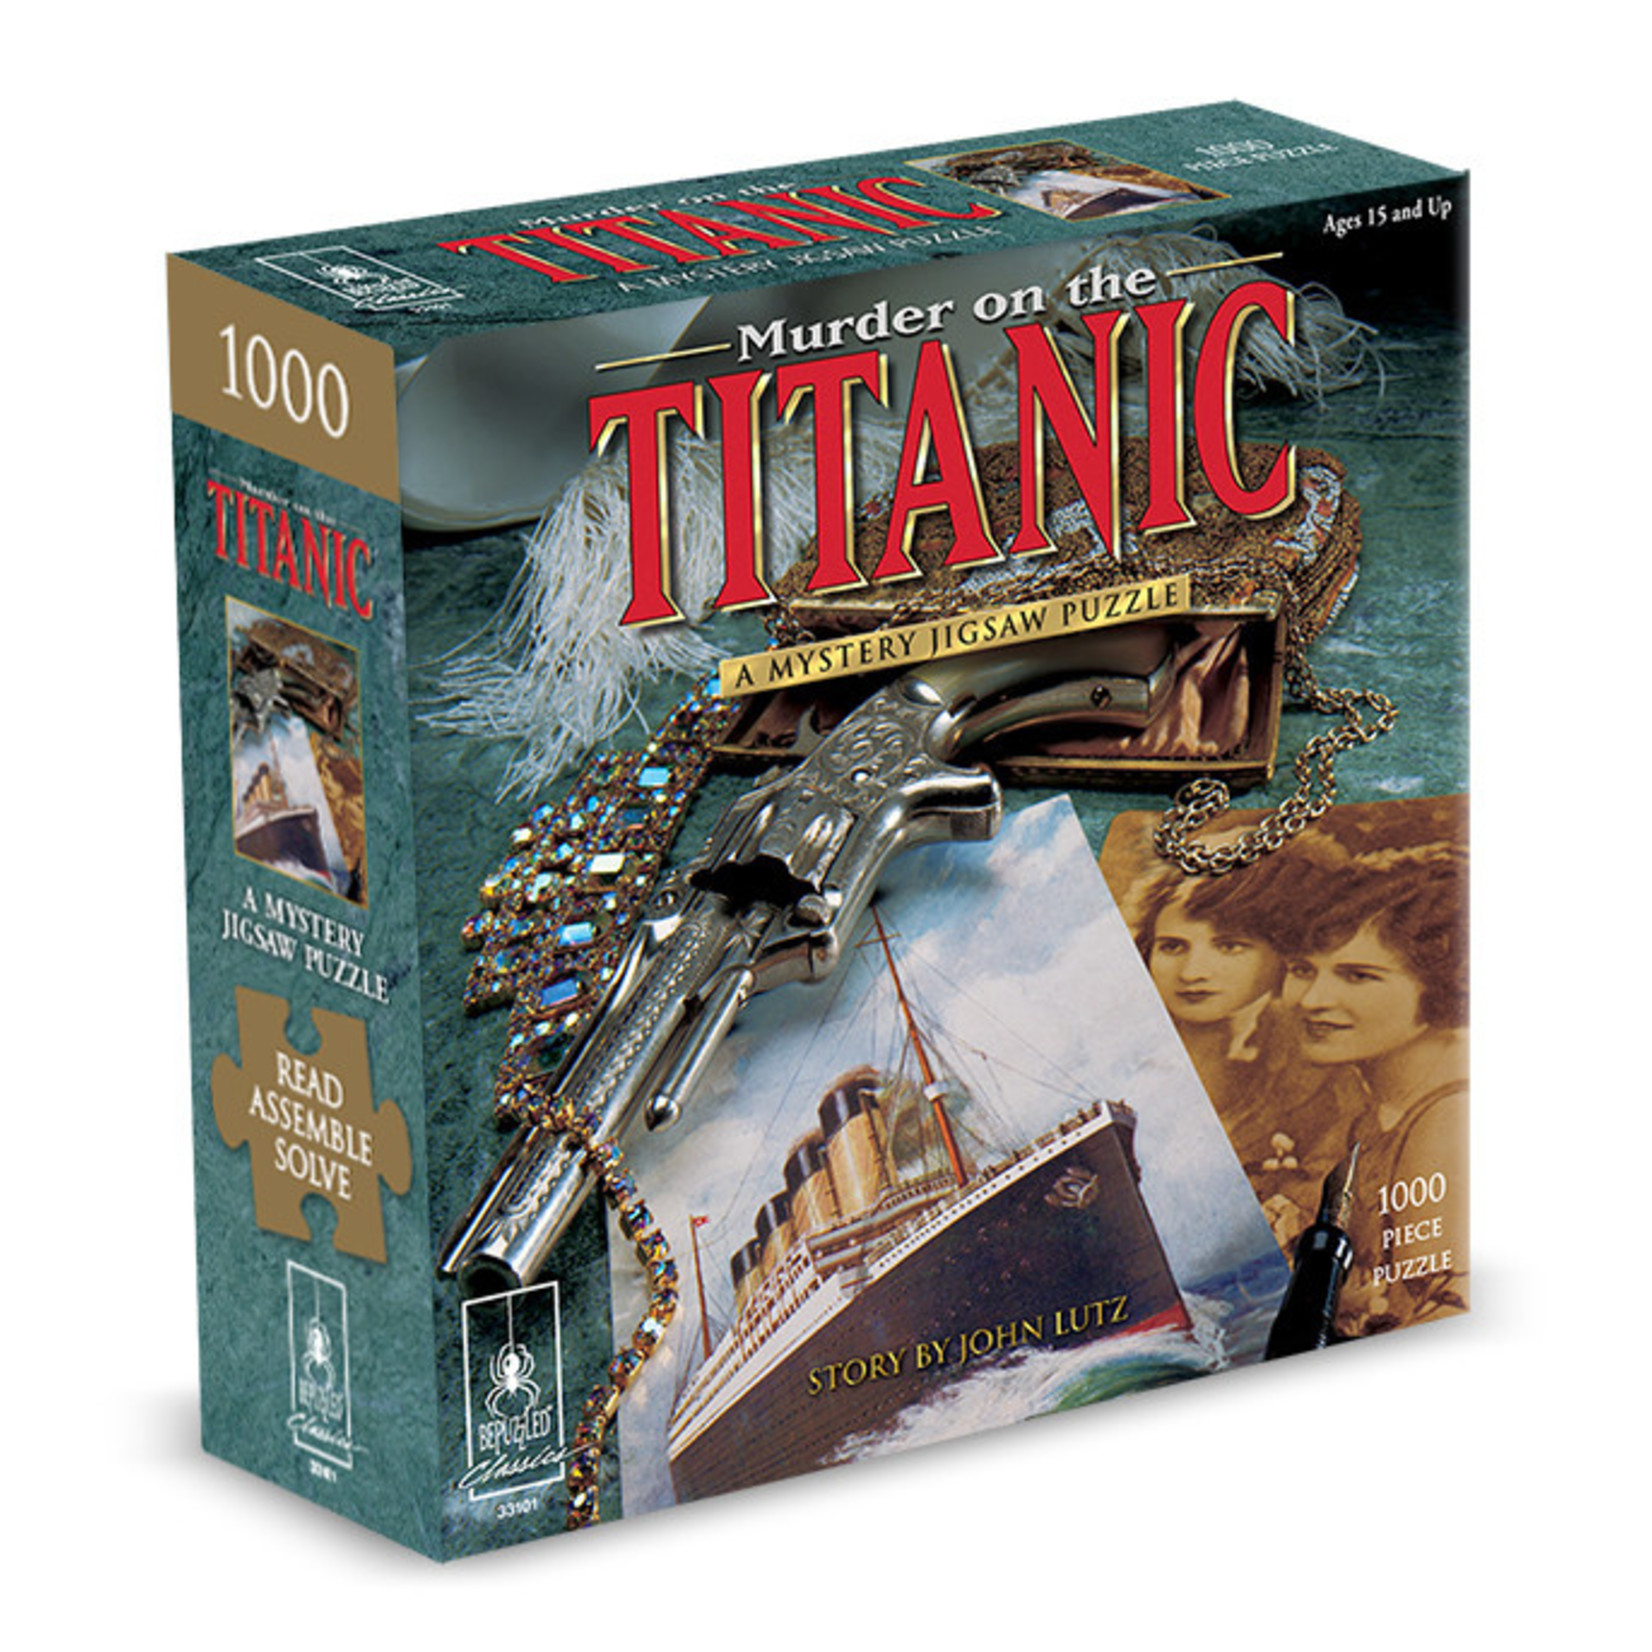 BePuzzled Murder on the Titanic: A Mystery Jigsaw Puzzle - 1000 Piece Jigsaw Puzzle